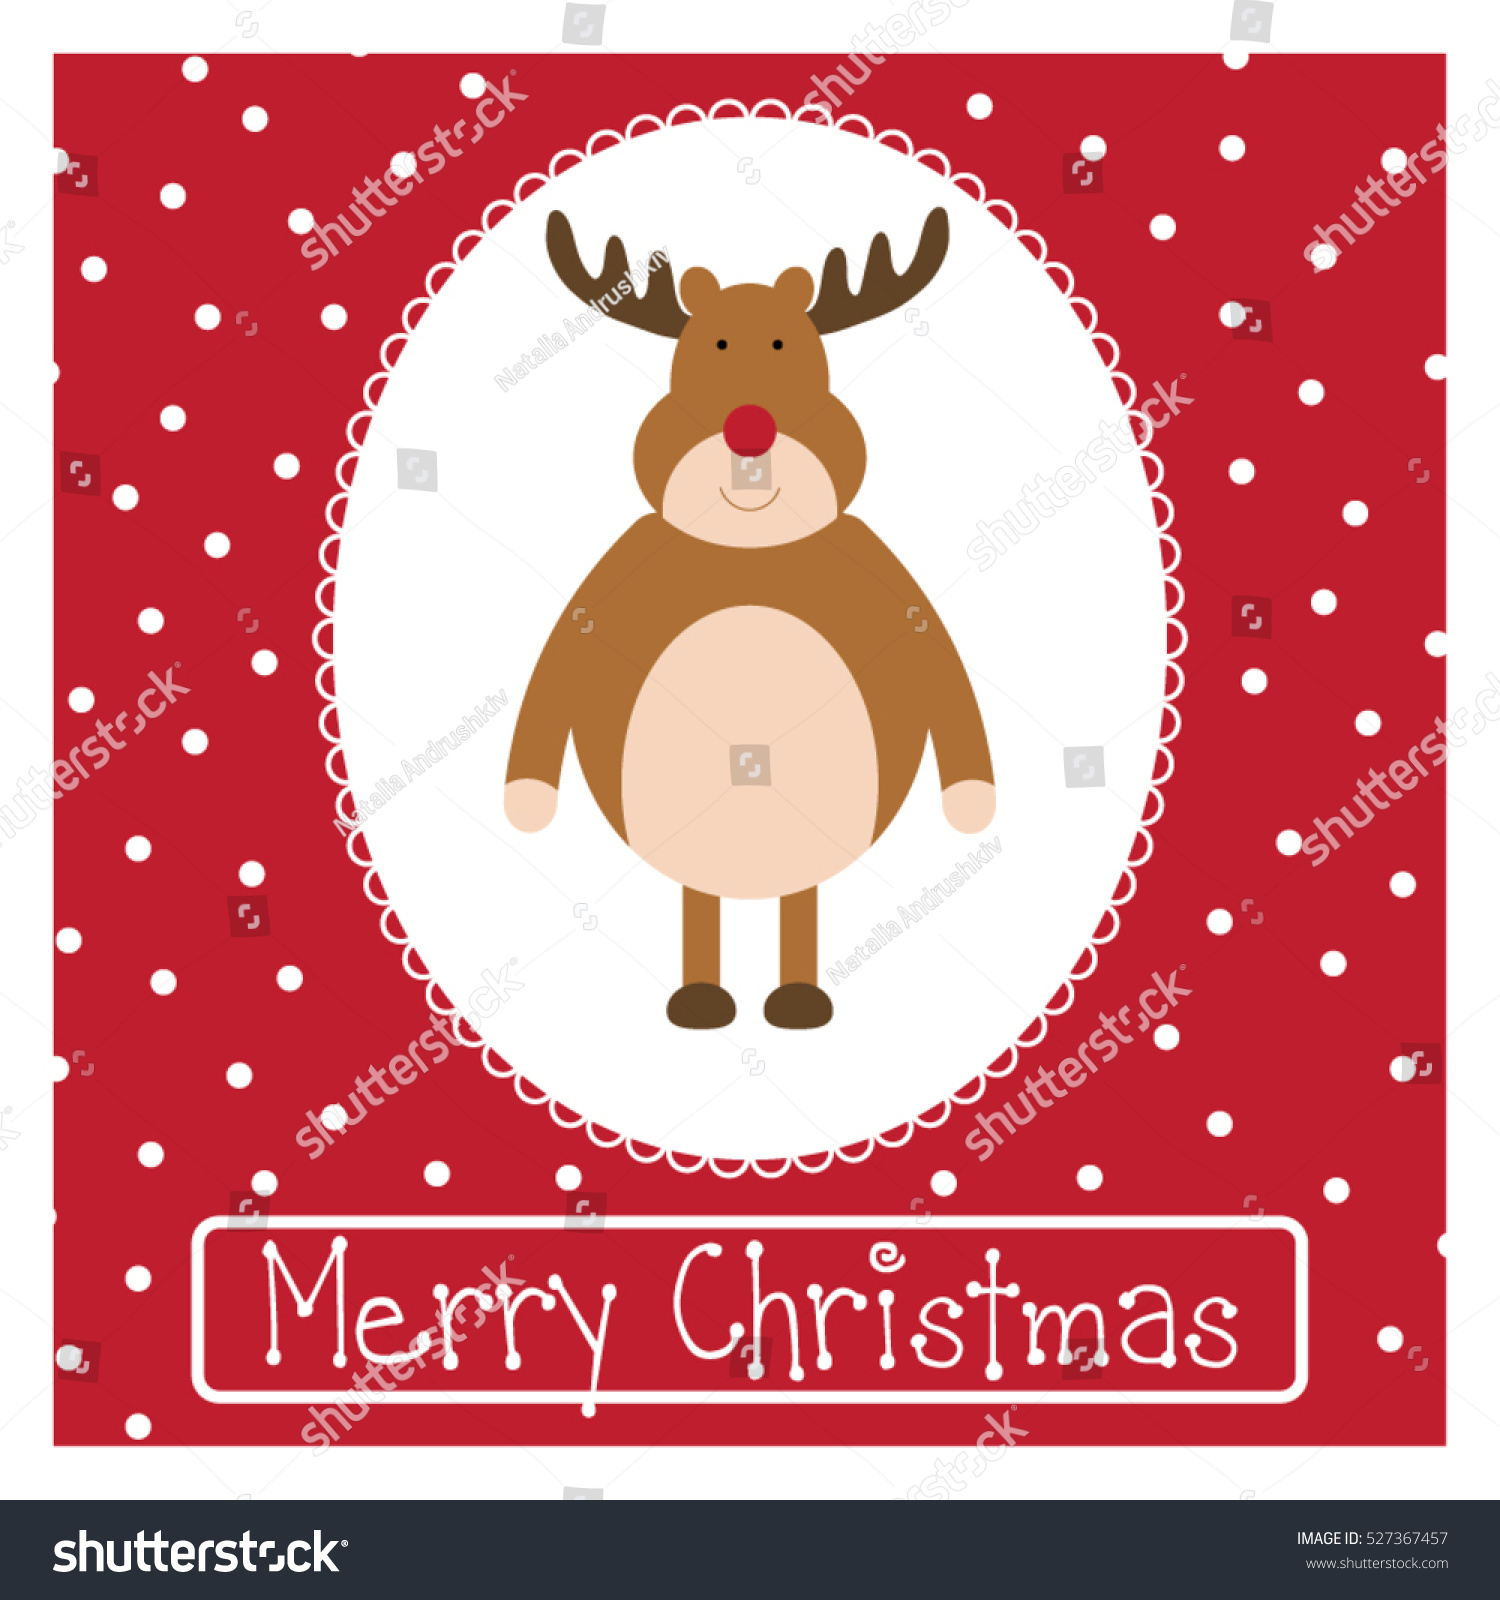 Christmas Greetings Card Funny Holiday Illustration Stock Vector